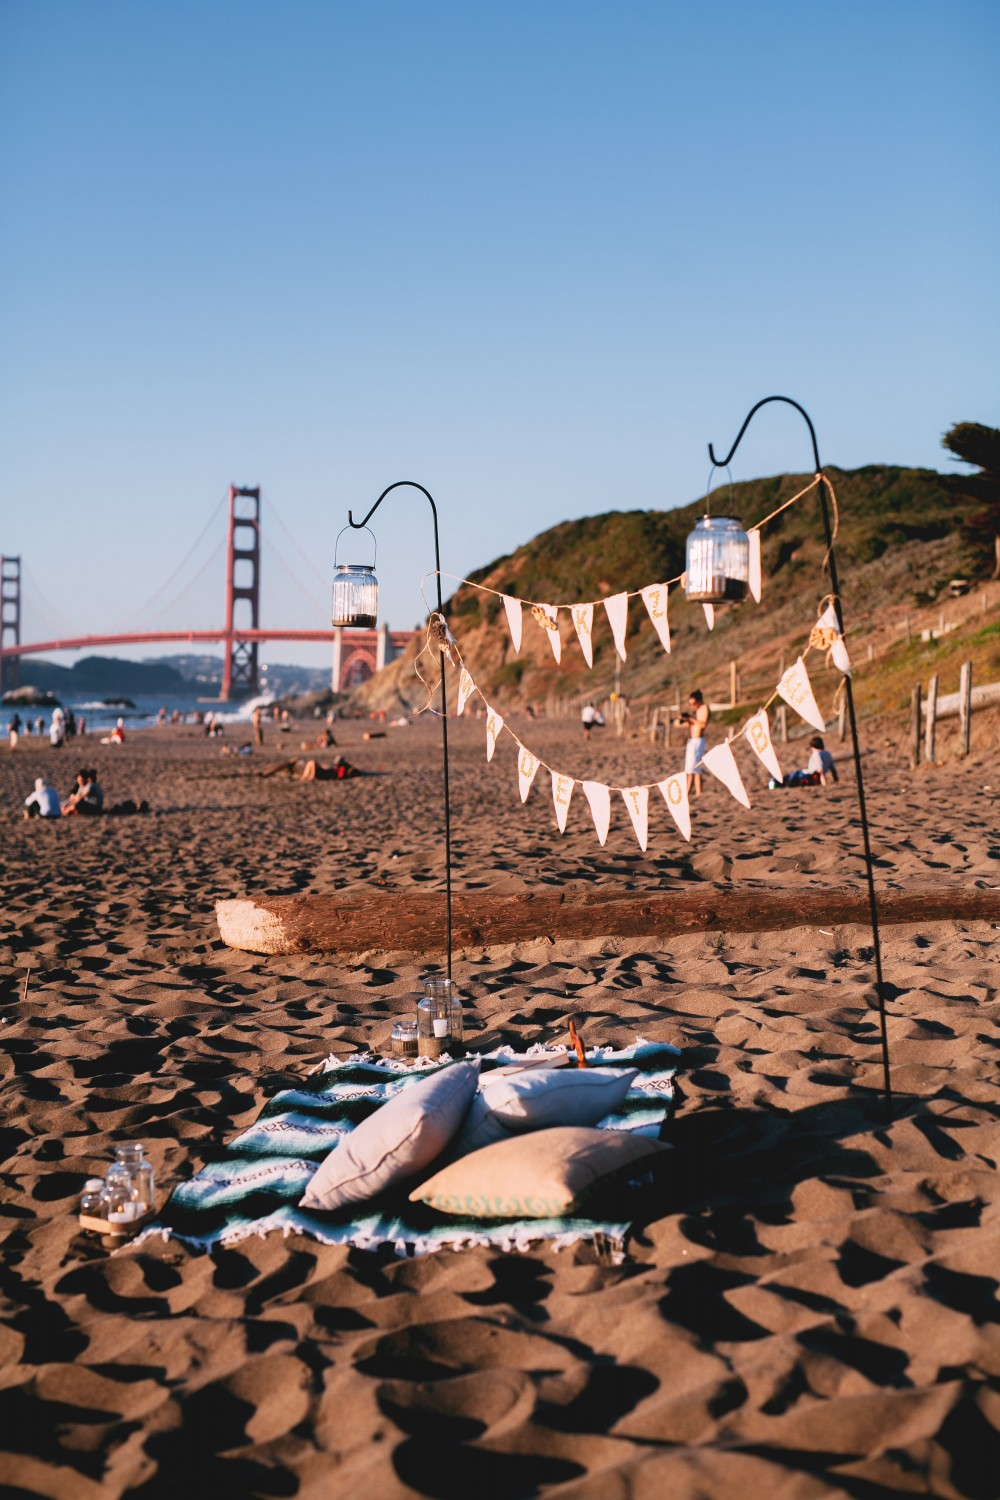 Image 2 of Kiersten and Zachary's Surprise Proposal on Baker Beach